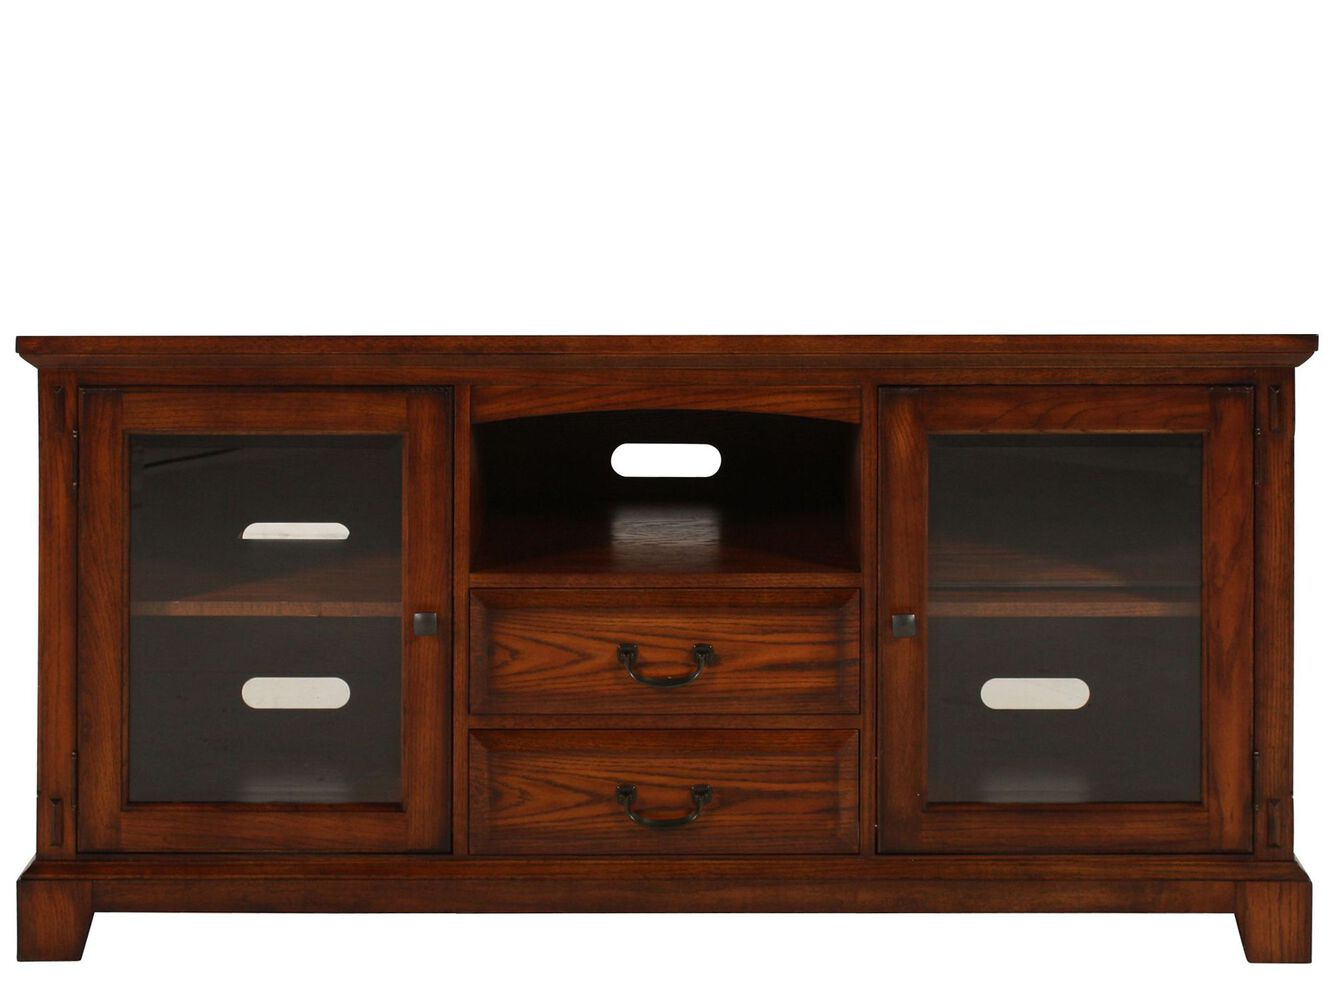 Two drawer transitional media console in rich brown cherry